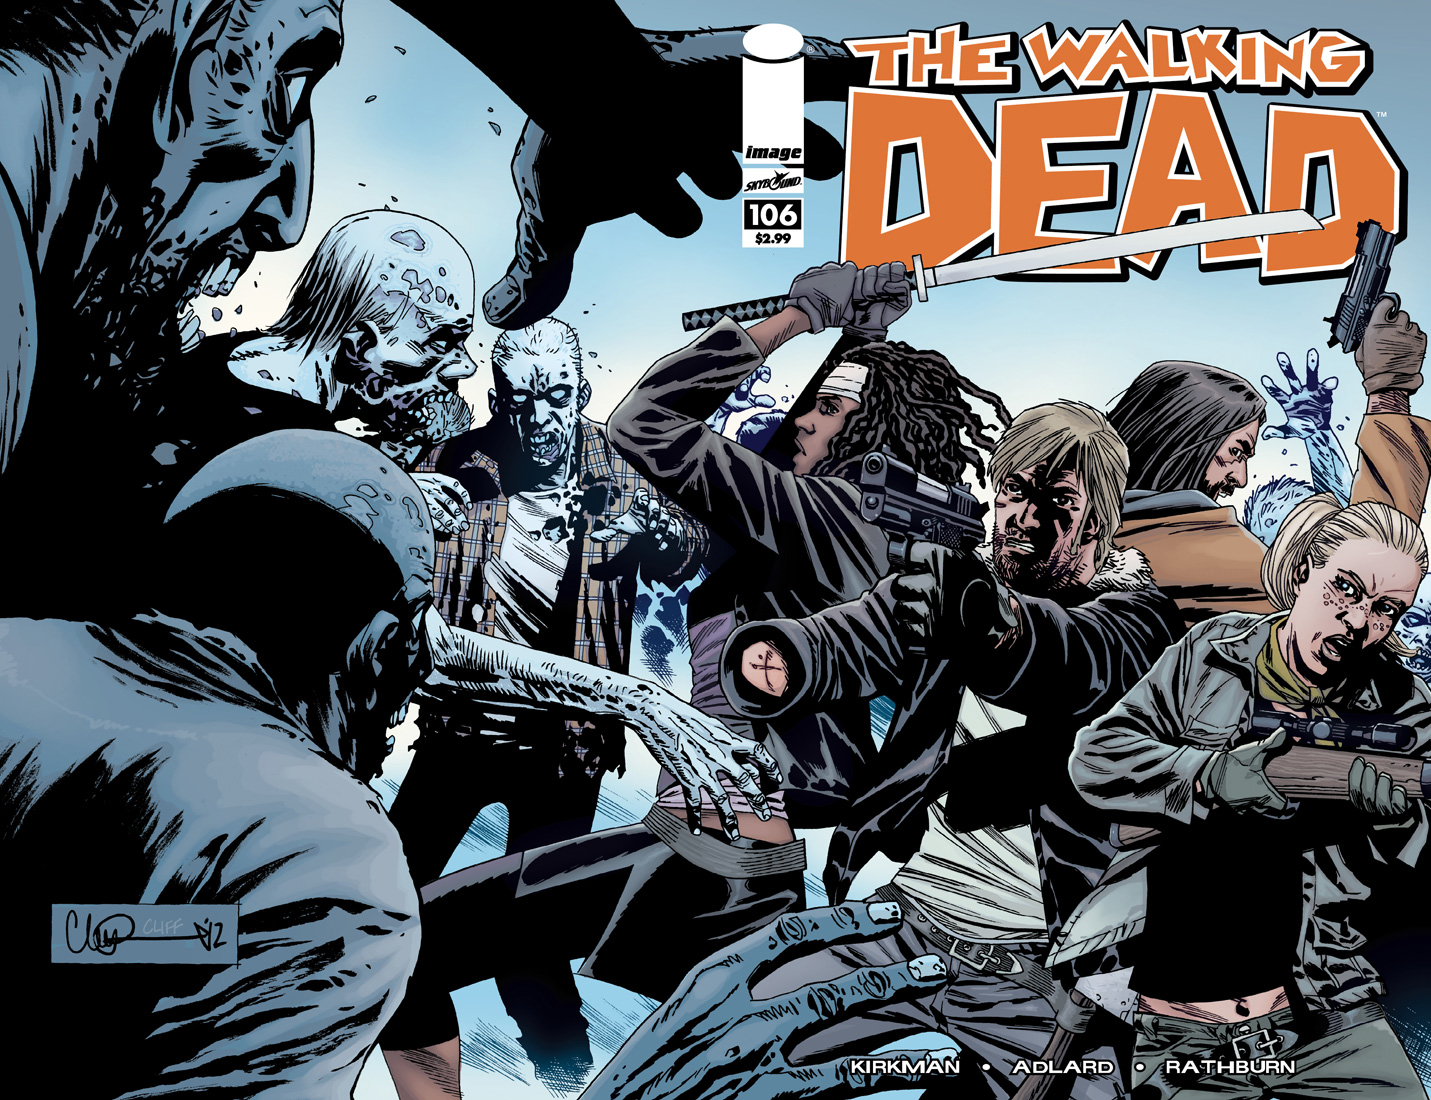 The Walking Dead: Show or Comic which is better?